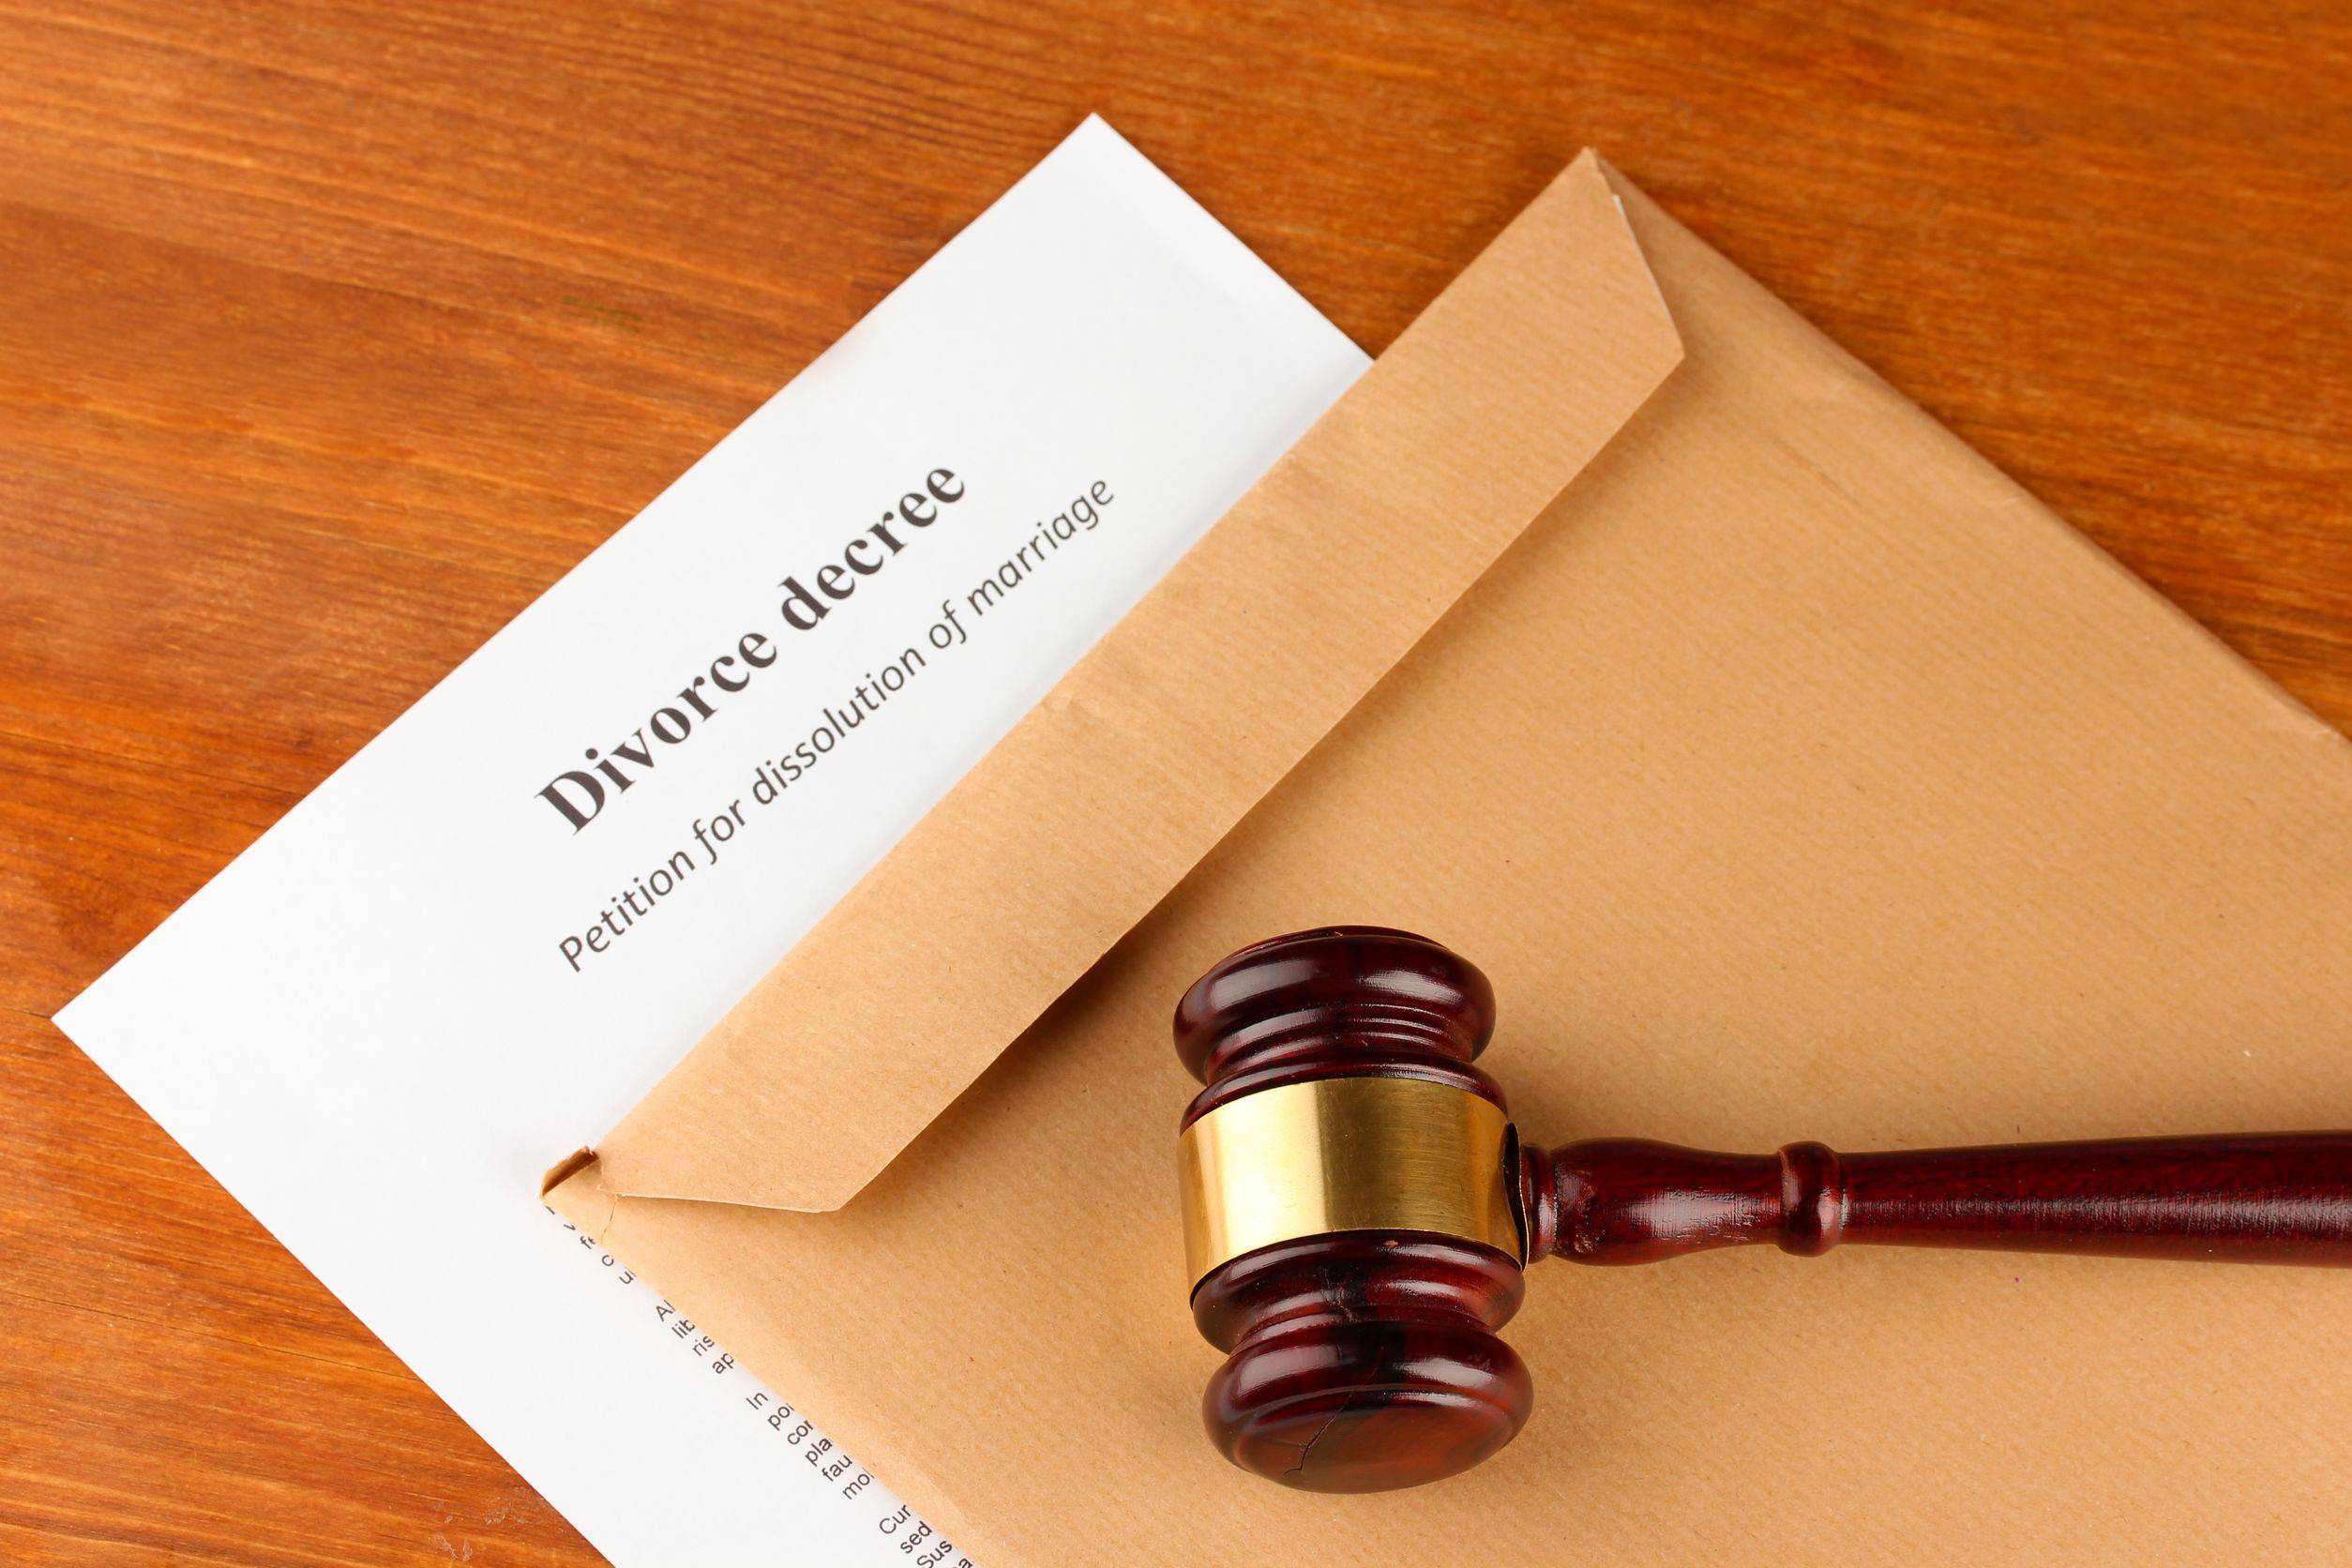 Going through a divorce, even an amicable one, is difficult. That's one of the reasons why you need a divorce law attorney in Lee's Summit, MO on your side. Once…